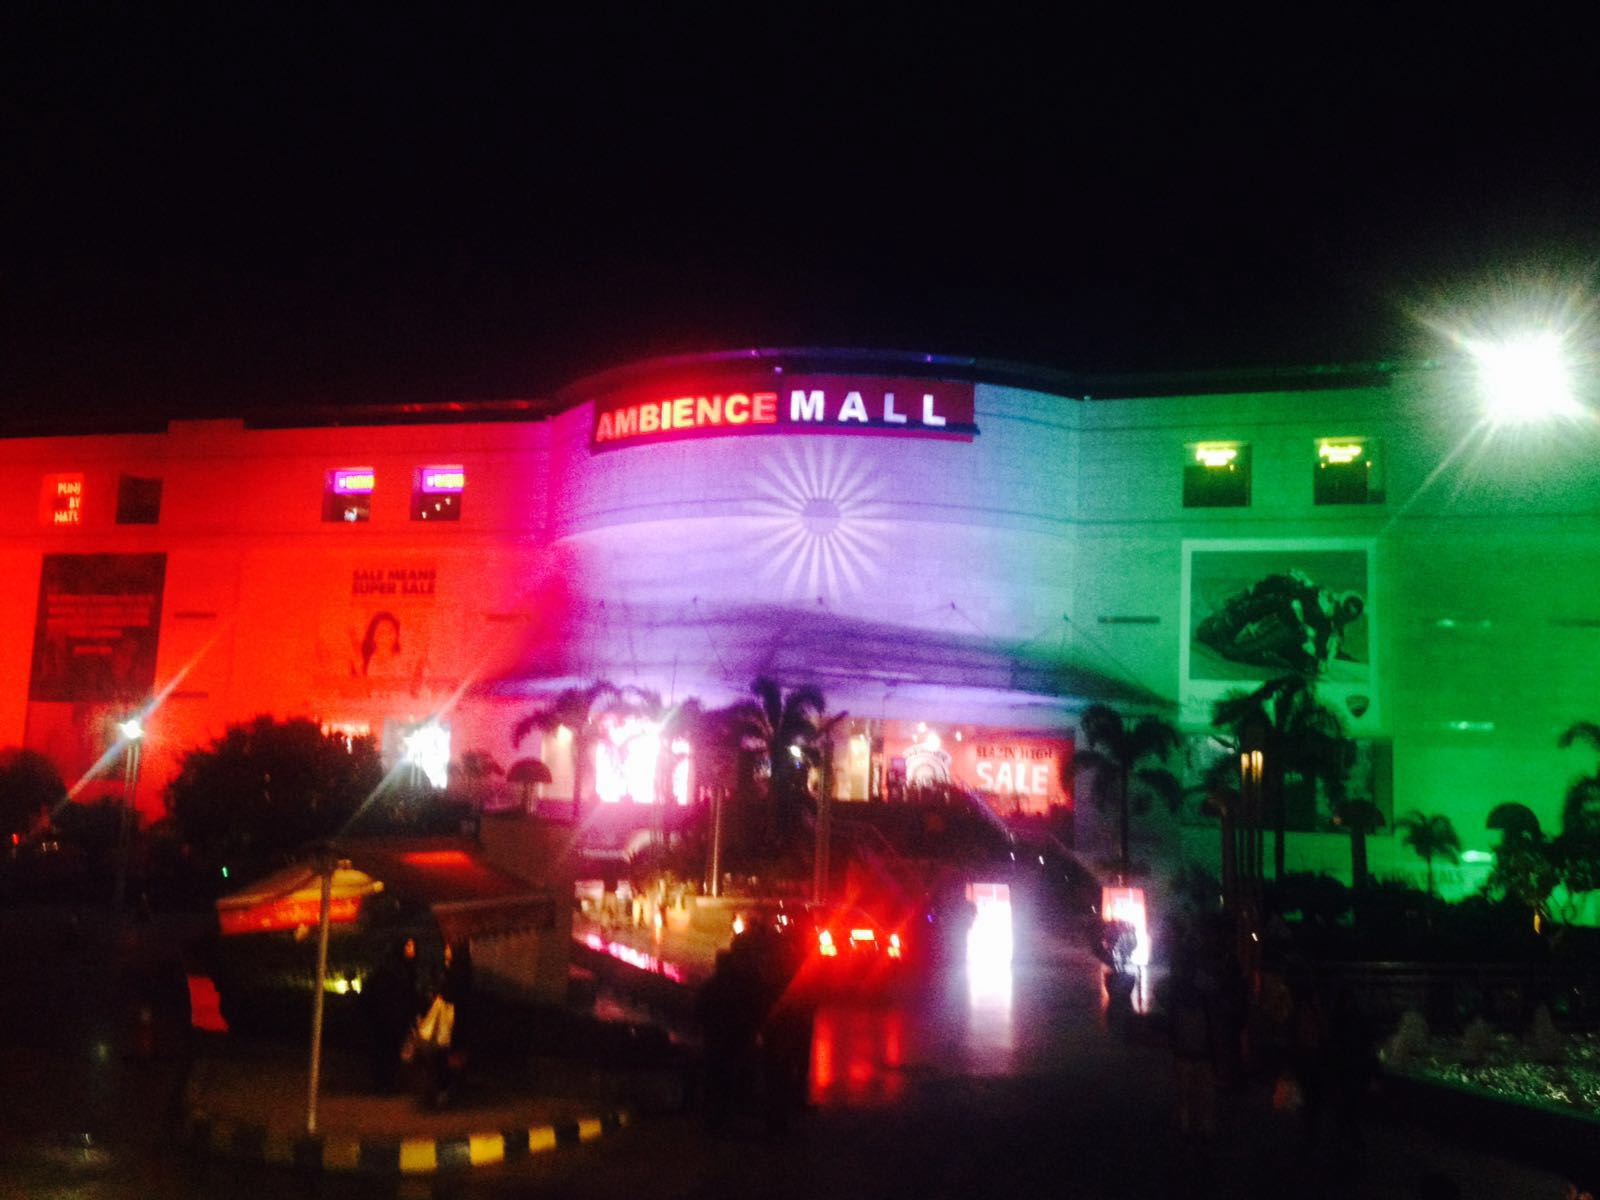 Republic Day Celebration at Ambience Malls